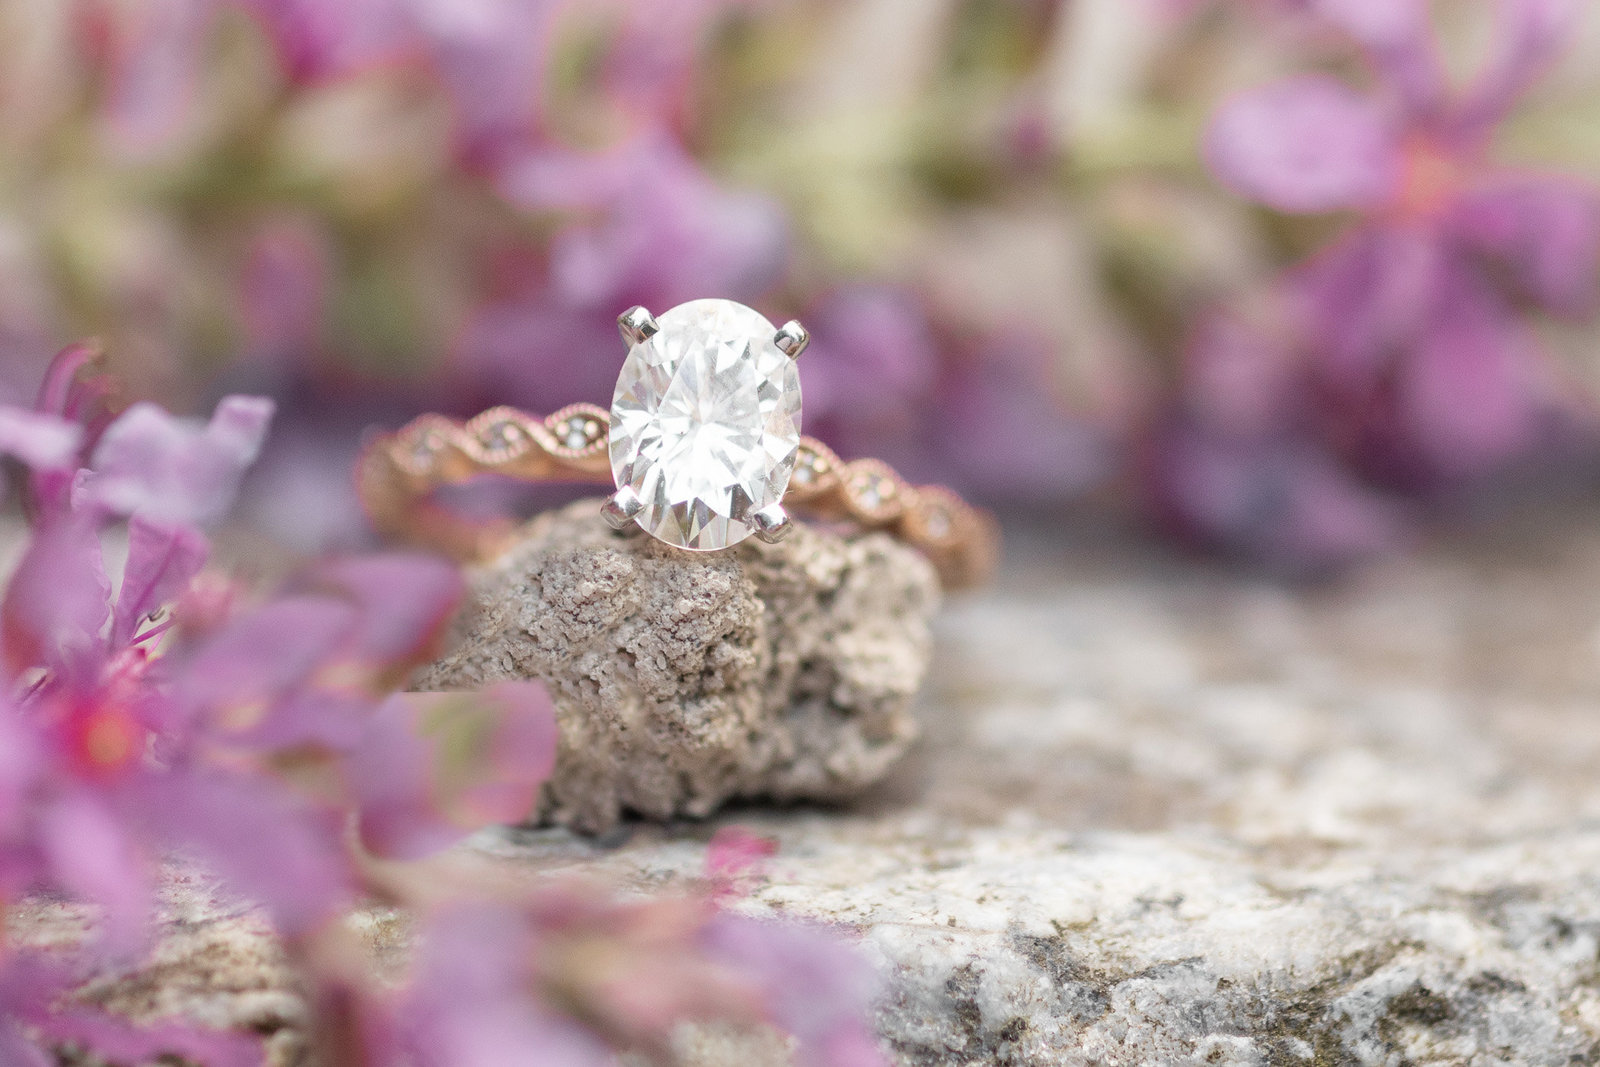 Oval Diamond and Rose Gold Engagement Ring on a rock and a Bed of Lavender Flowers